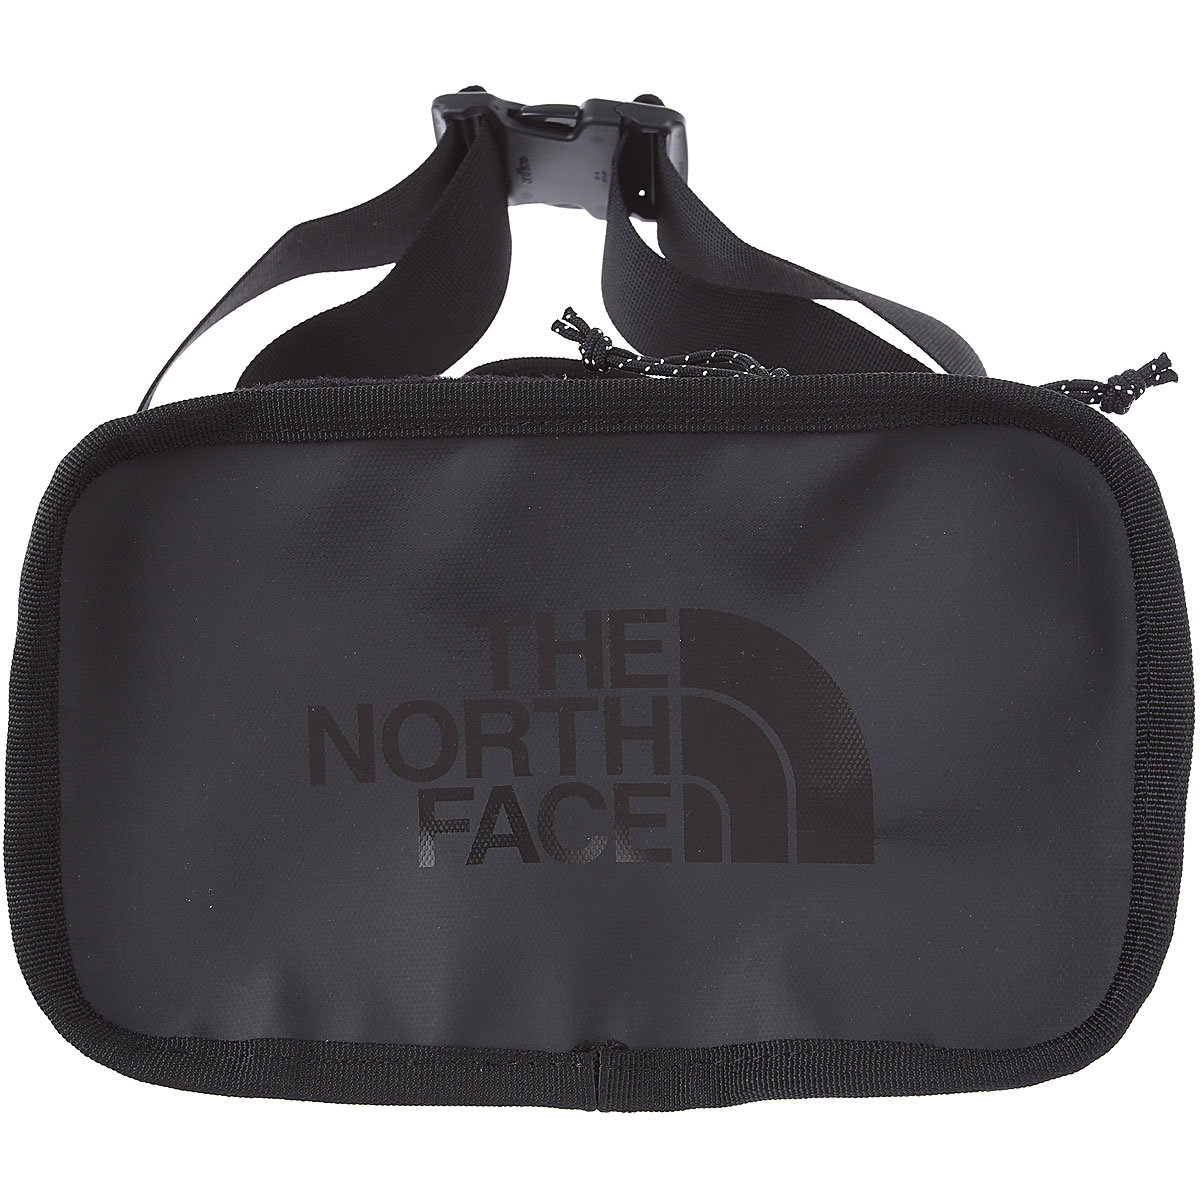 The North Face Toiletry Bag for Men On Sale, Black, polyestere, 2019